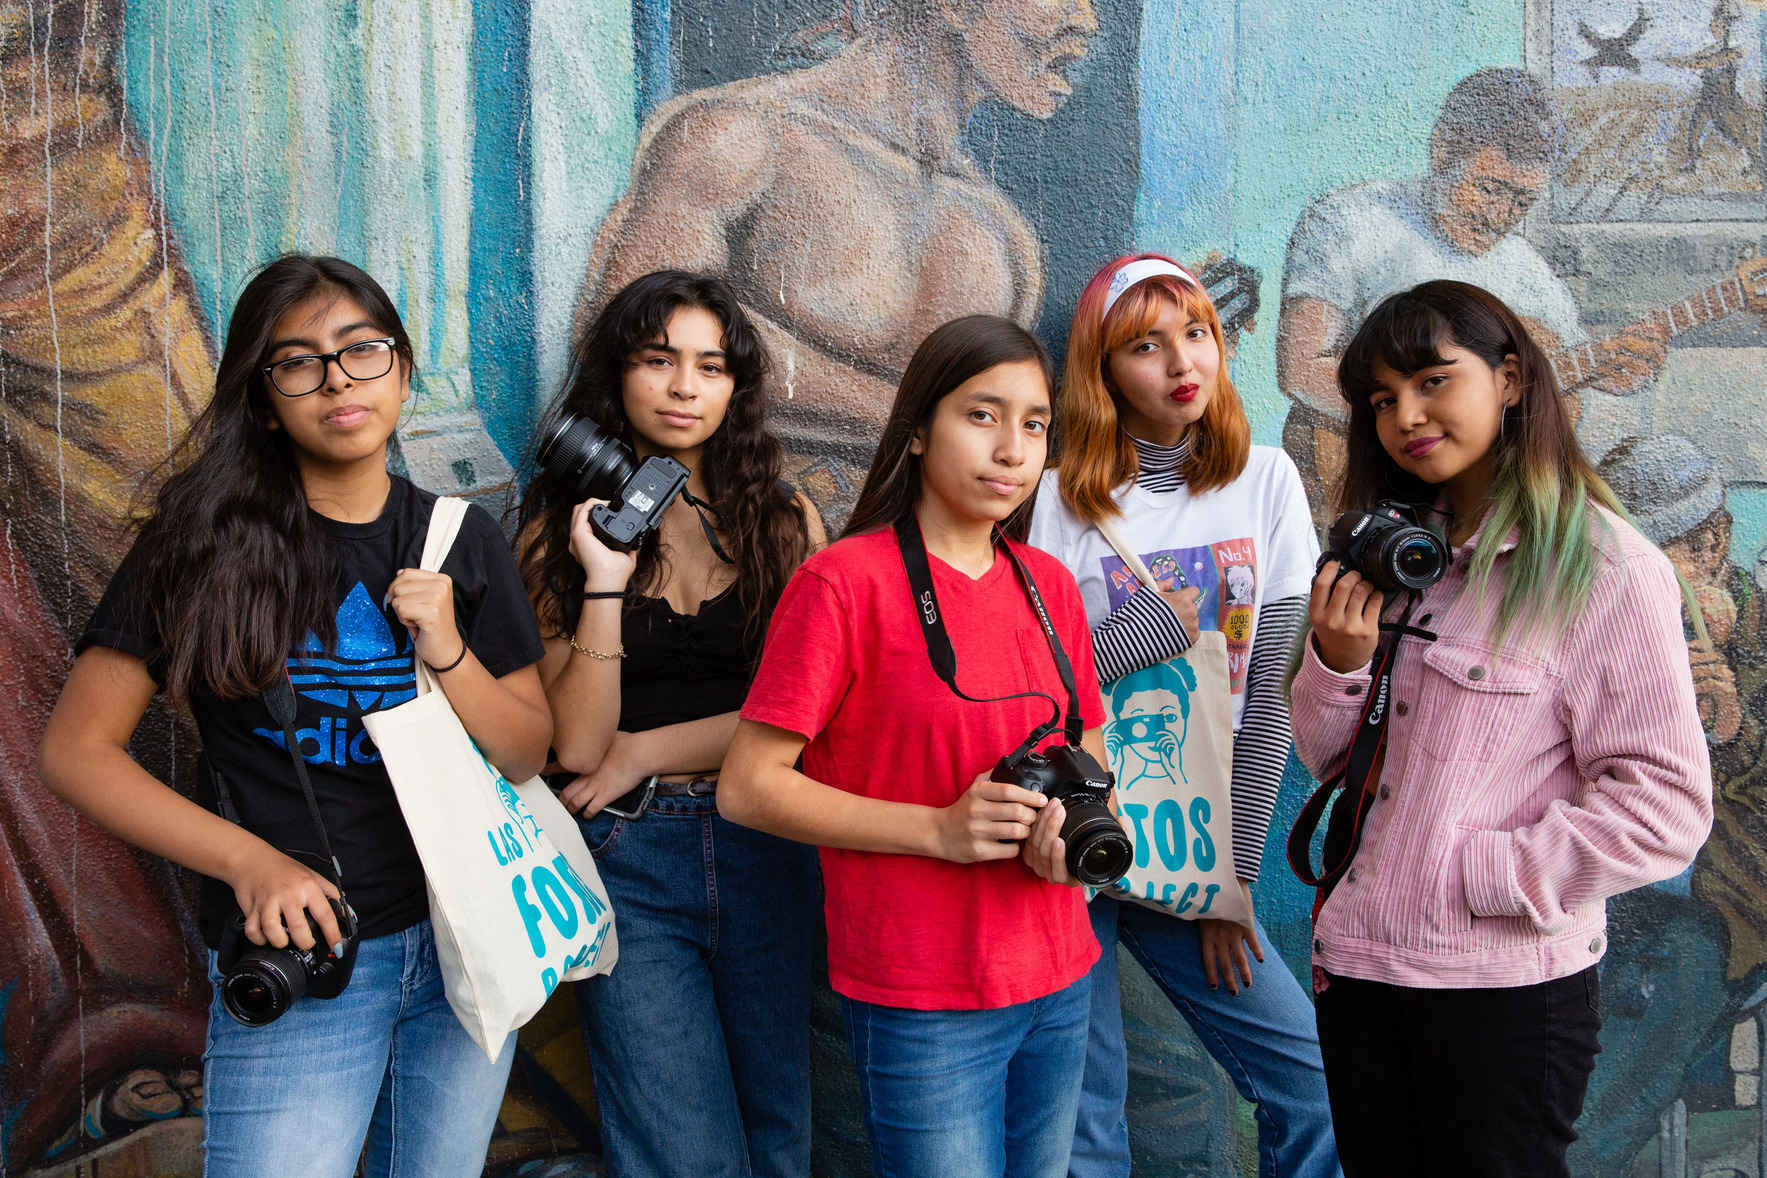 Support the empowerment of teen girls through photography! image